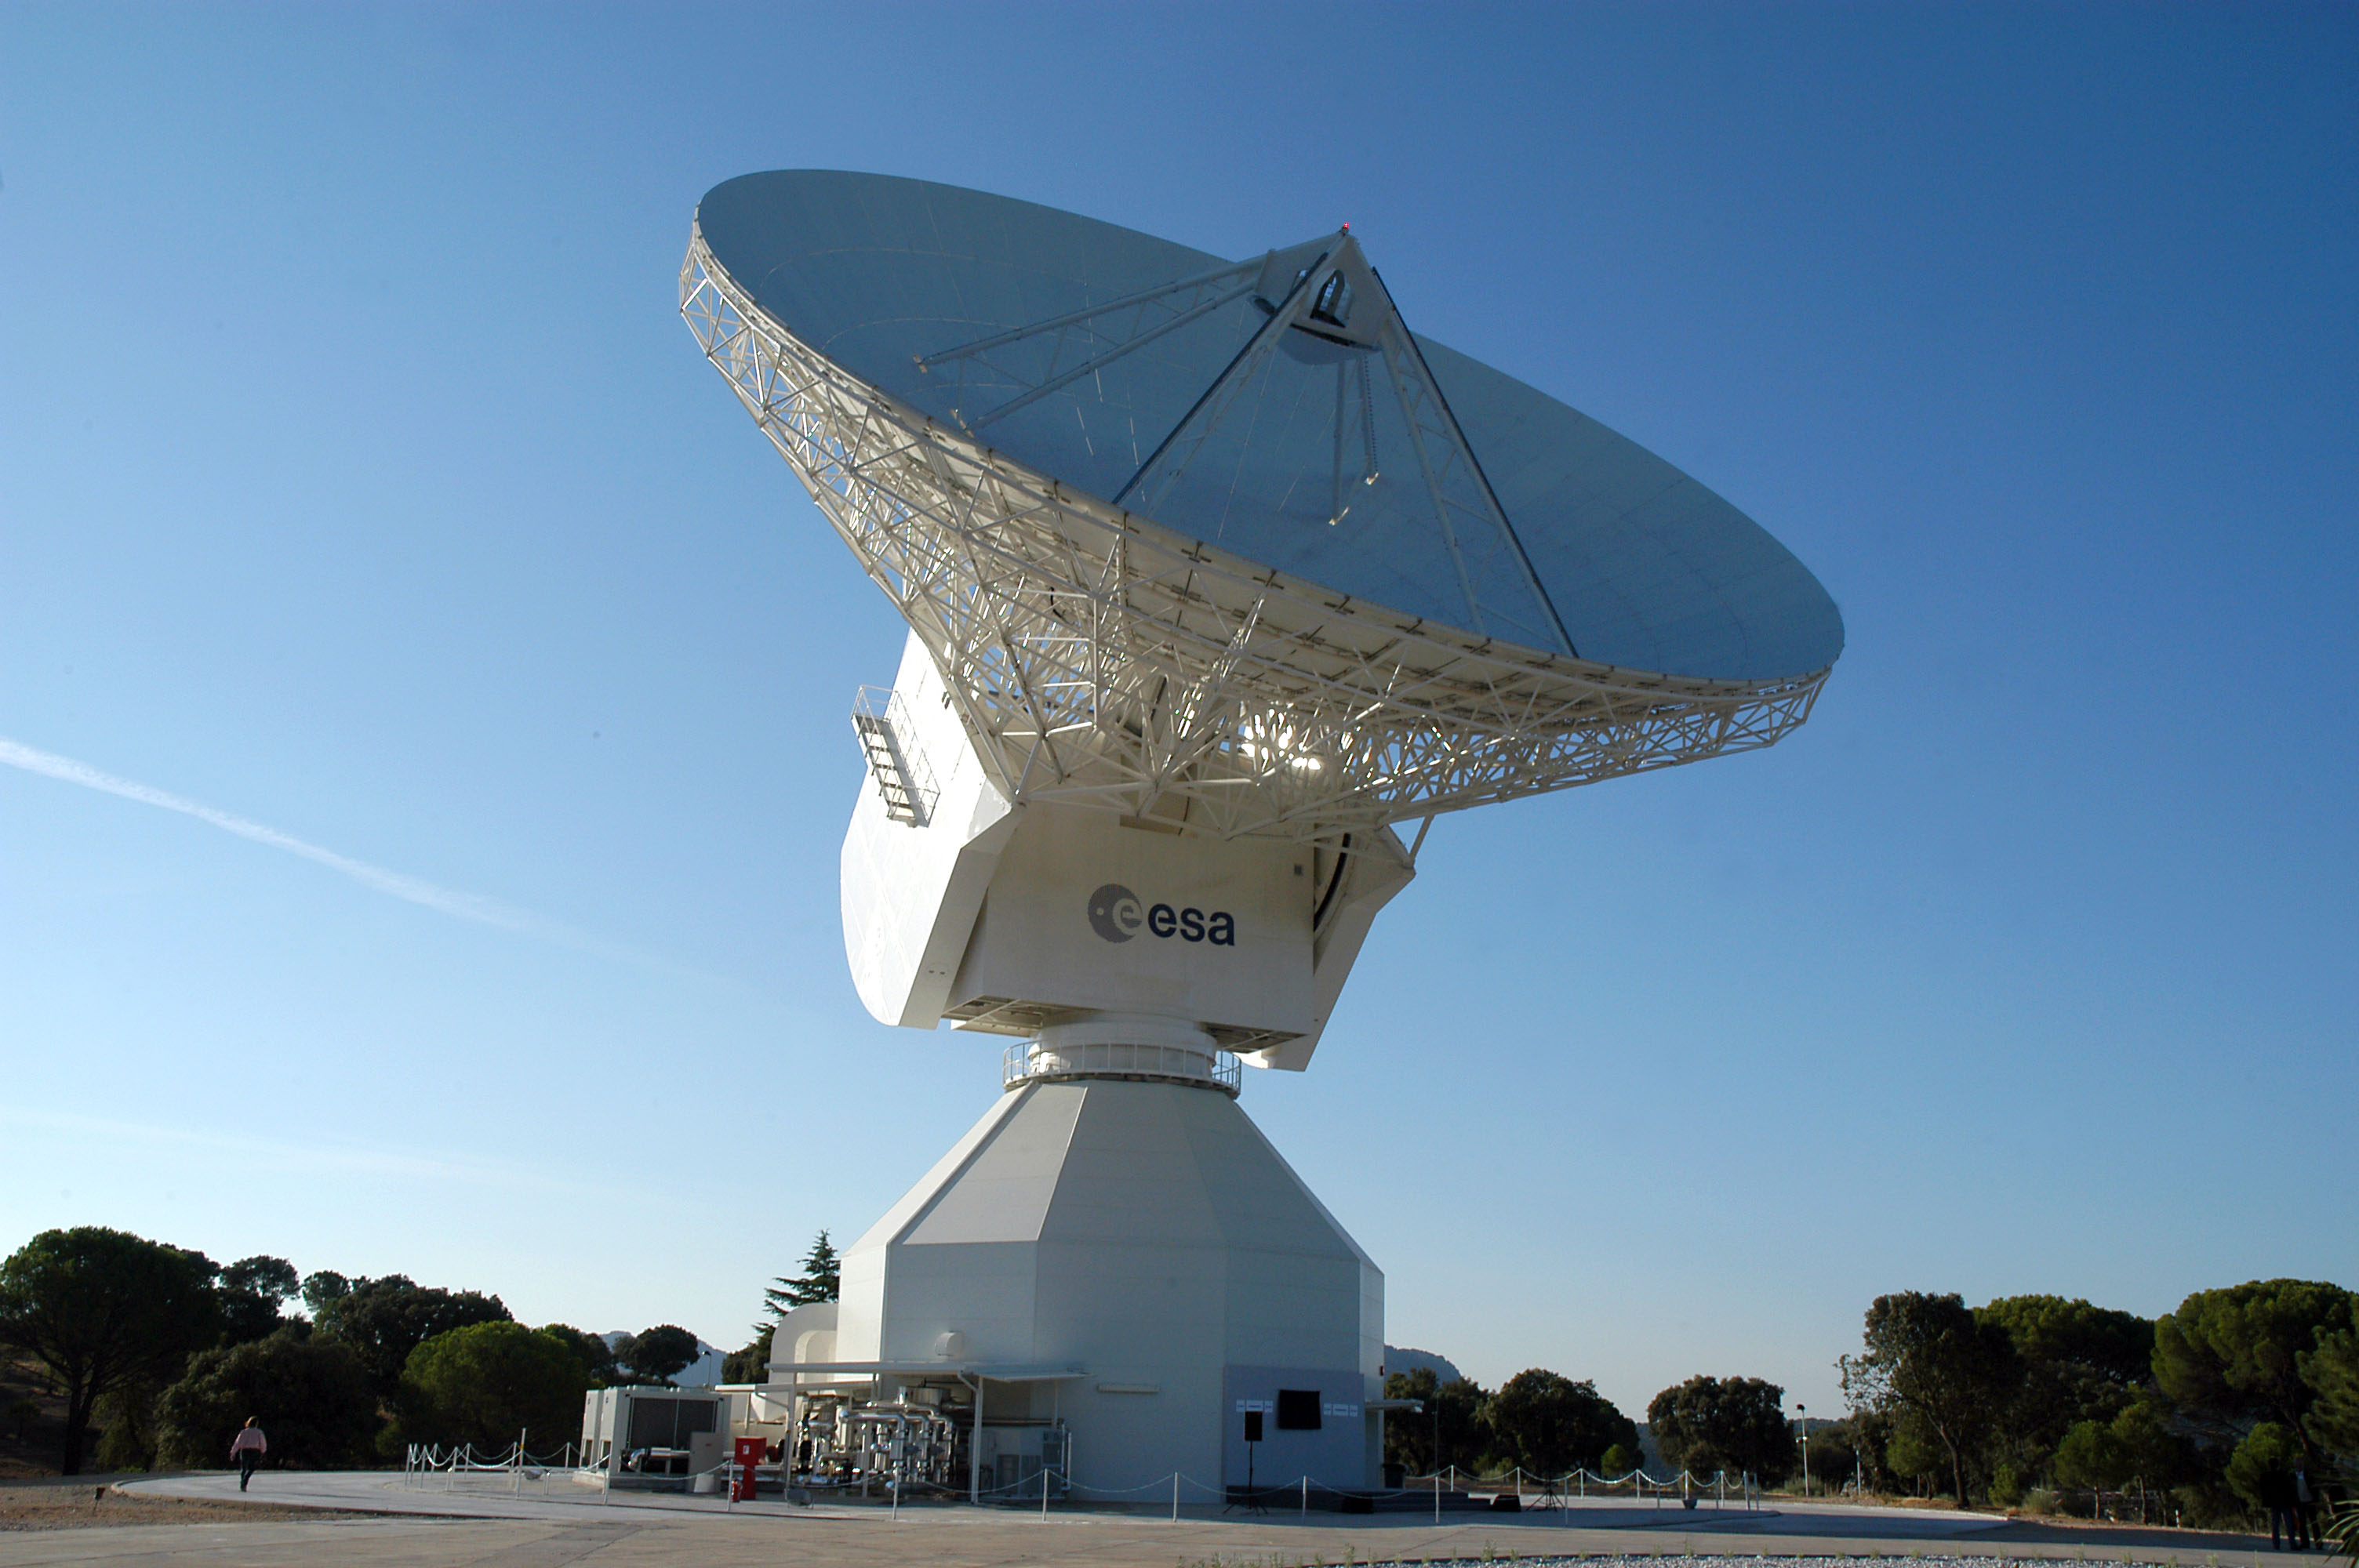 ESA's 35 m-diameter deep-space dish antenna, DSA-2, is located at Cebreros, near Avila, Spain. It is controlled, as part of the Estrack network, from ESOC, the European Space Operations Centre, Darmstadt, Germany. Credit: ESA